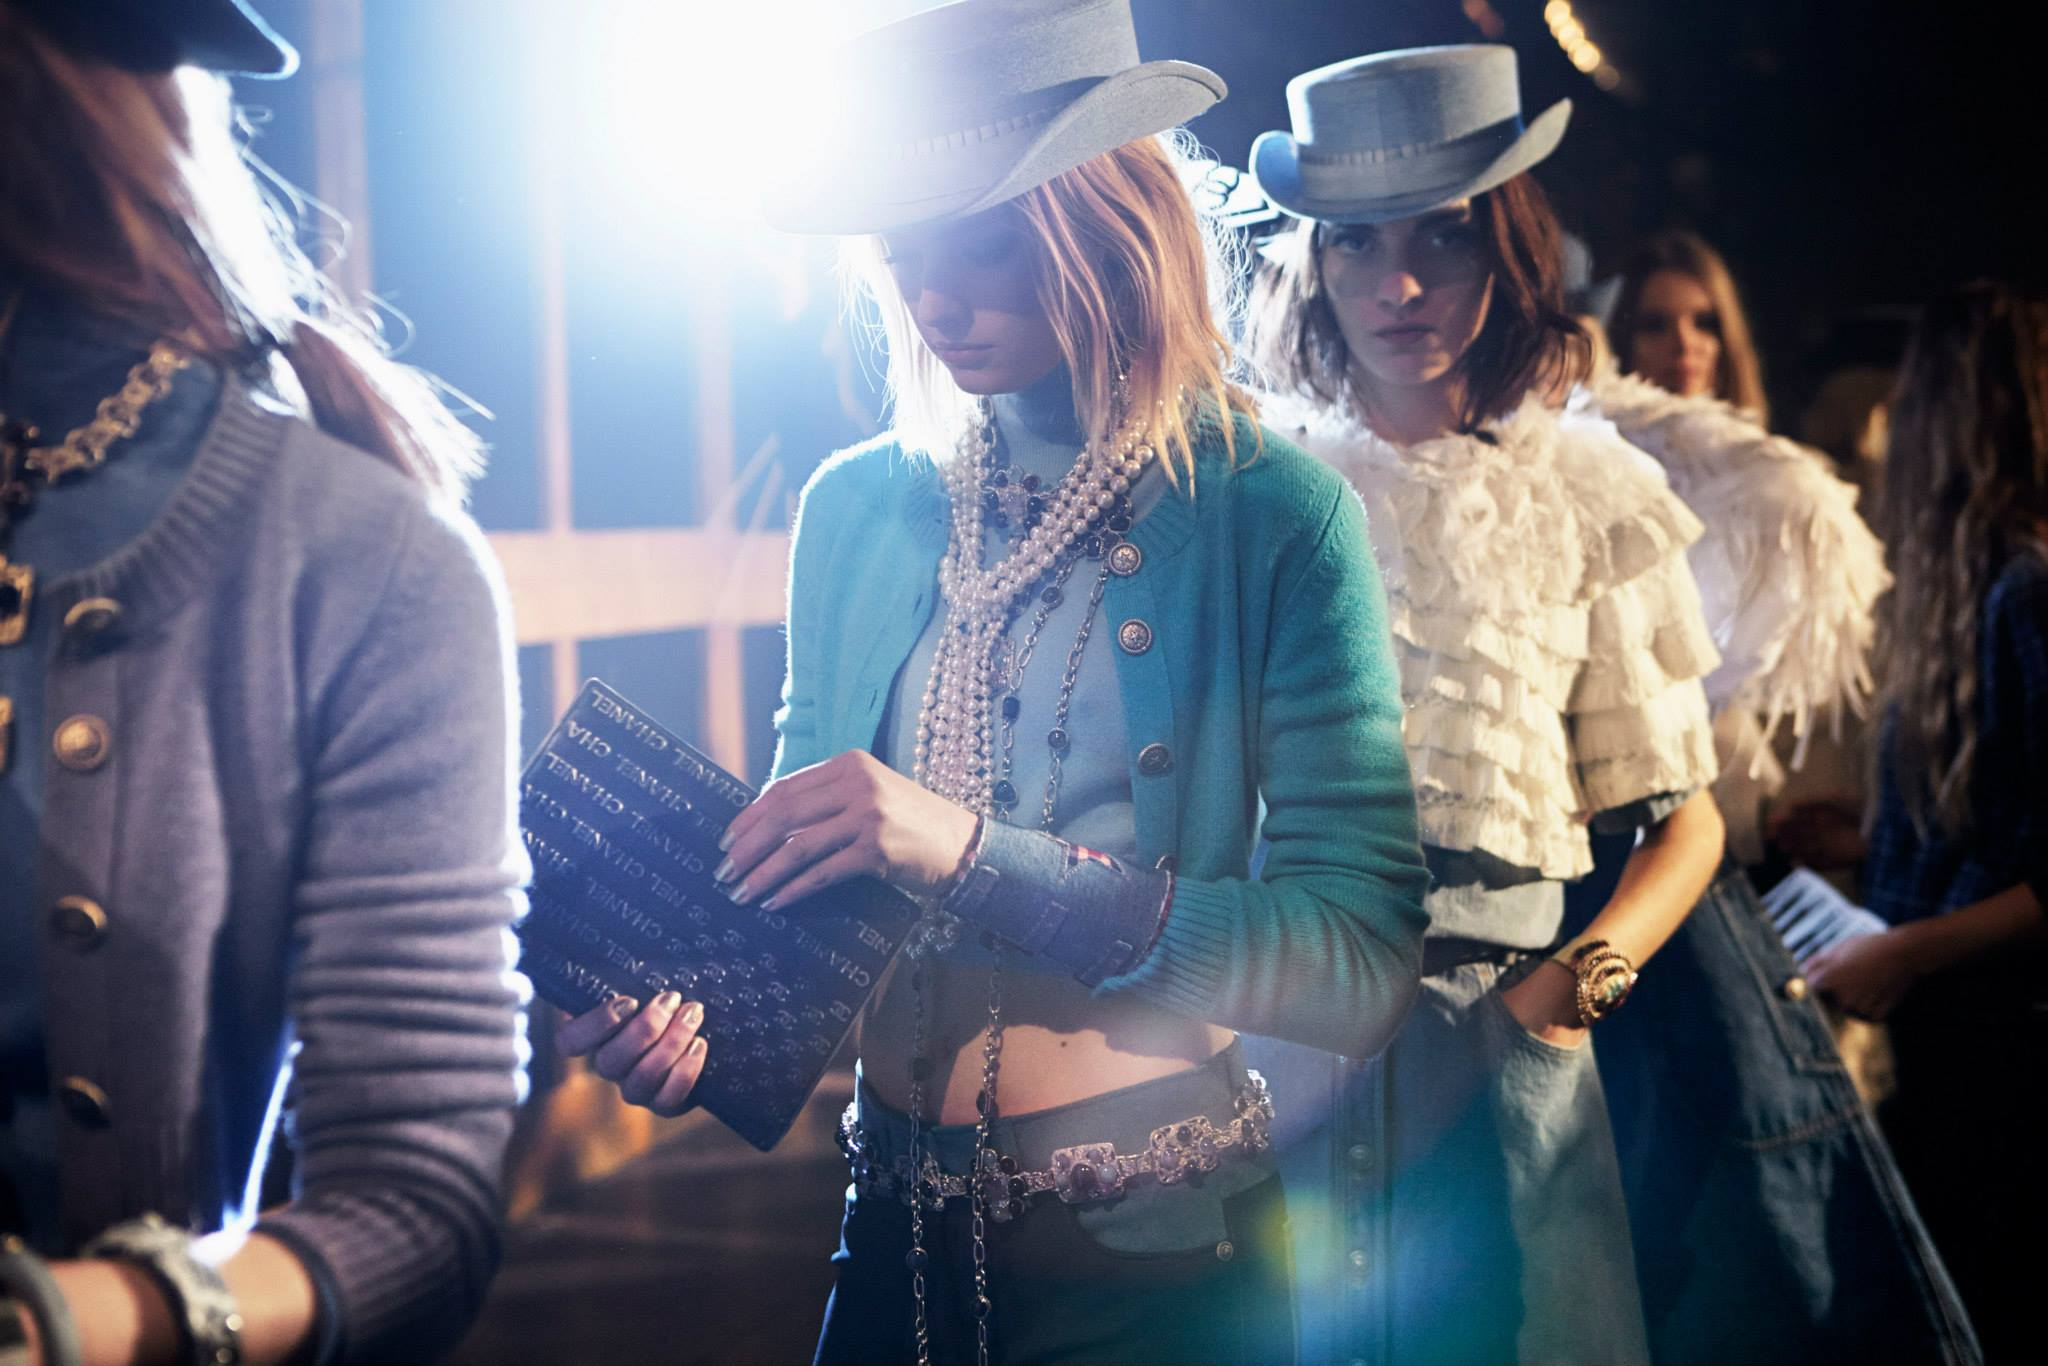 Chanel Paris Dallas Show 2013/14 Lagerfeld, cowboy wild west cancan